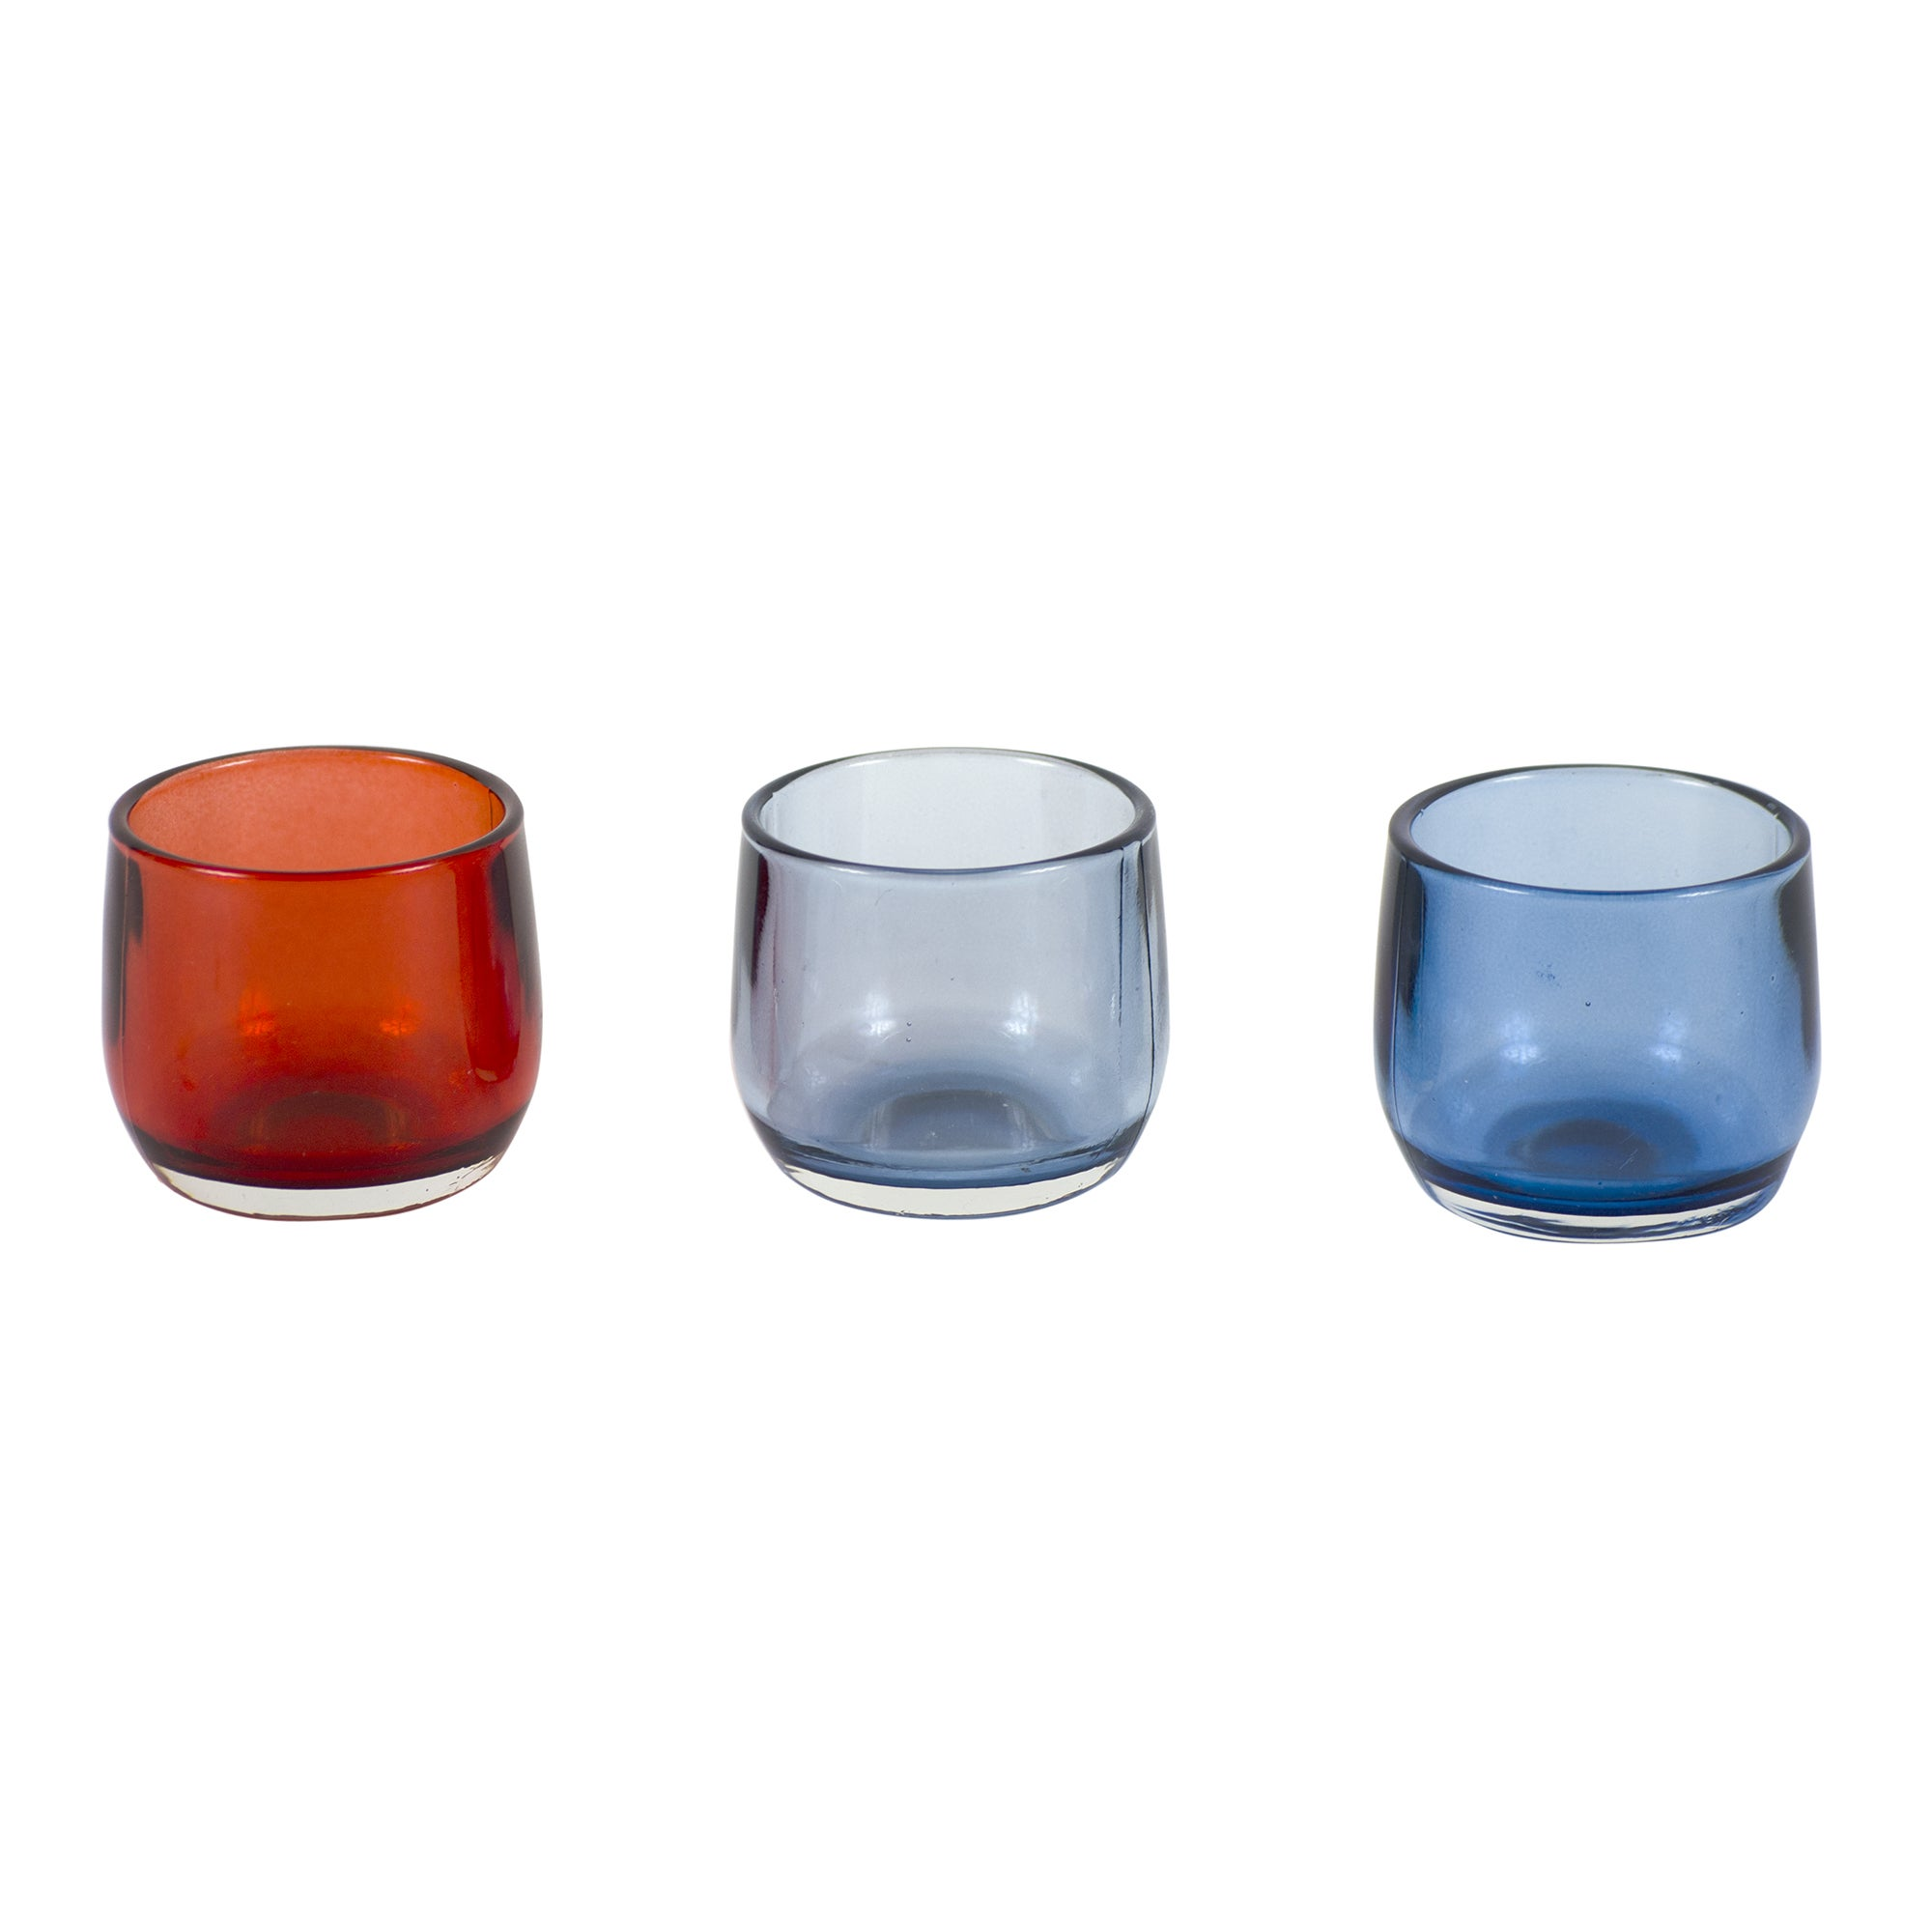 The Hamptons Collection Set of 3 Tealight Holders